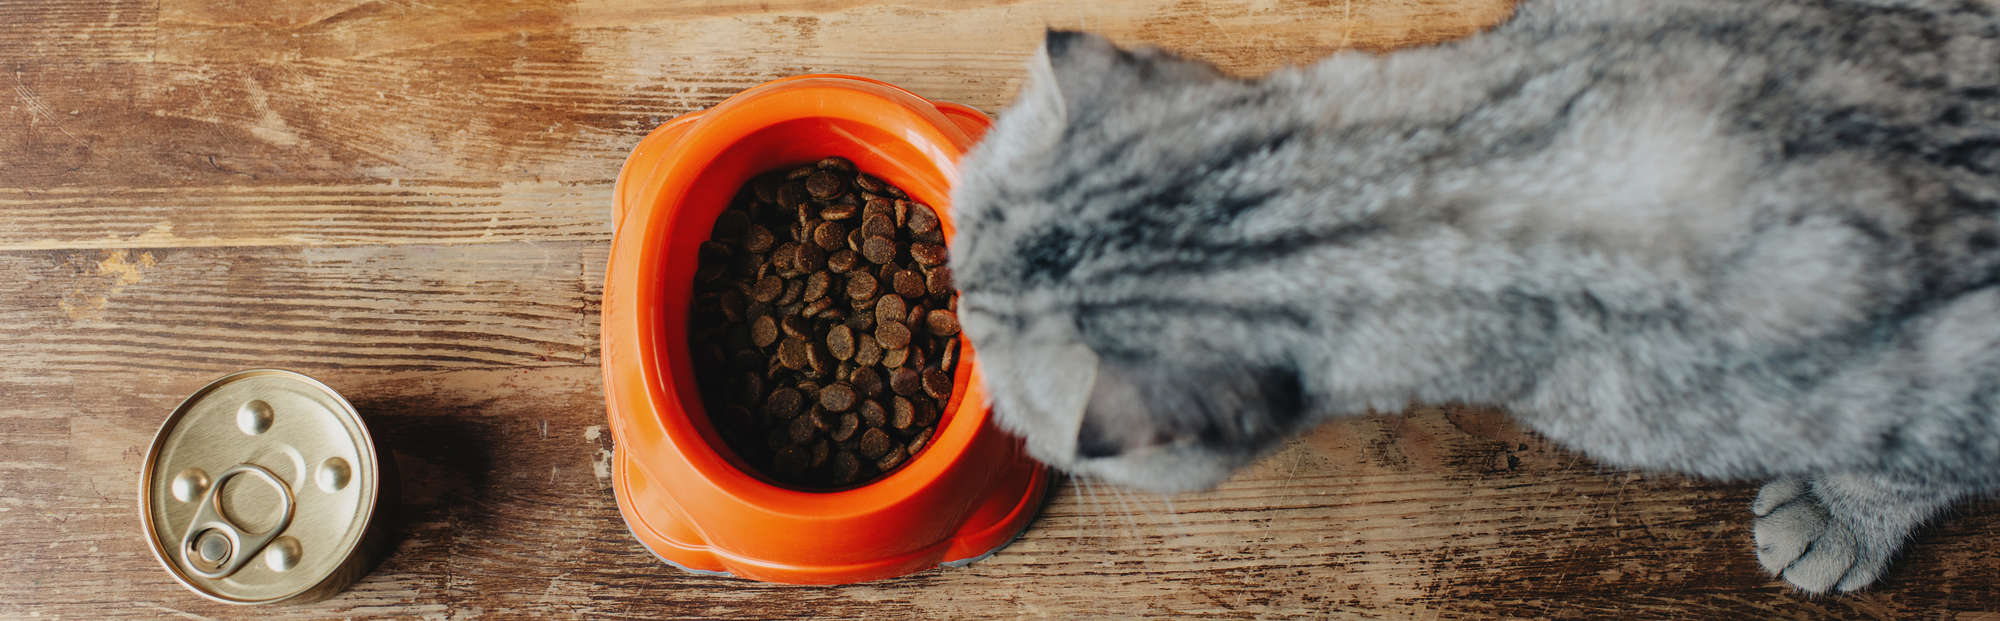 low phosphorus cat food